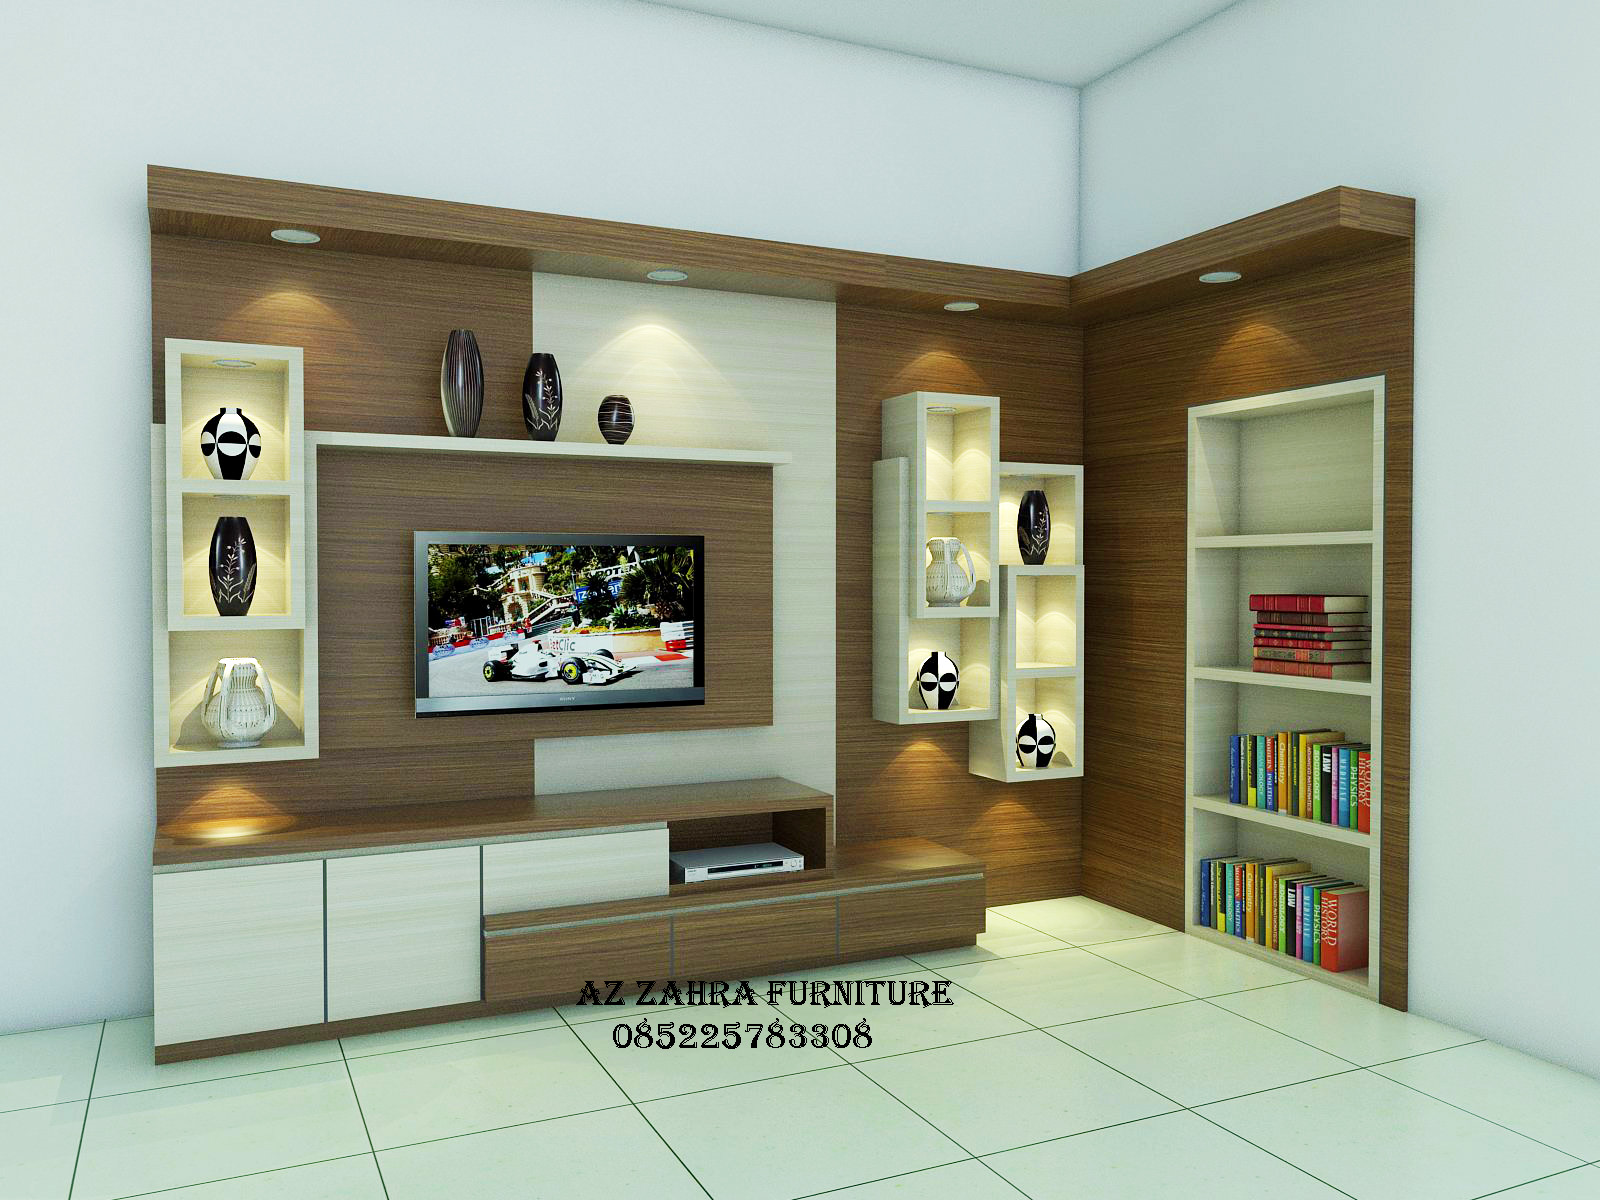 CV Azzahra Furniture